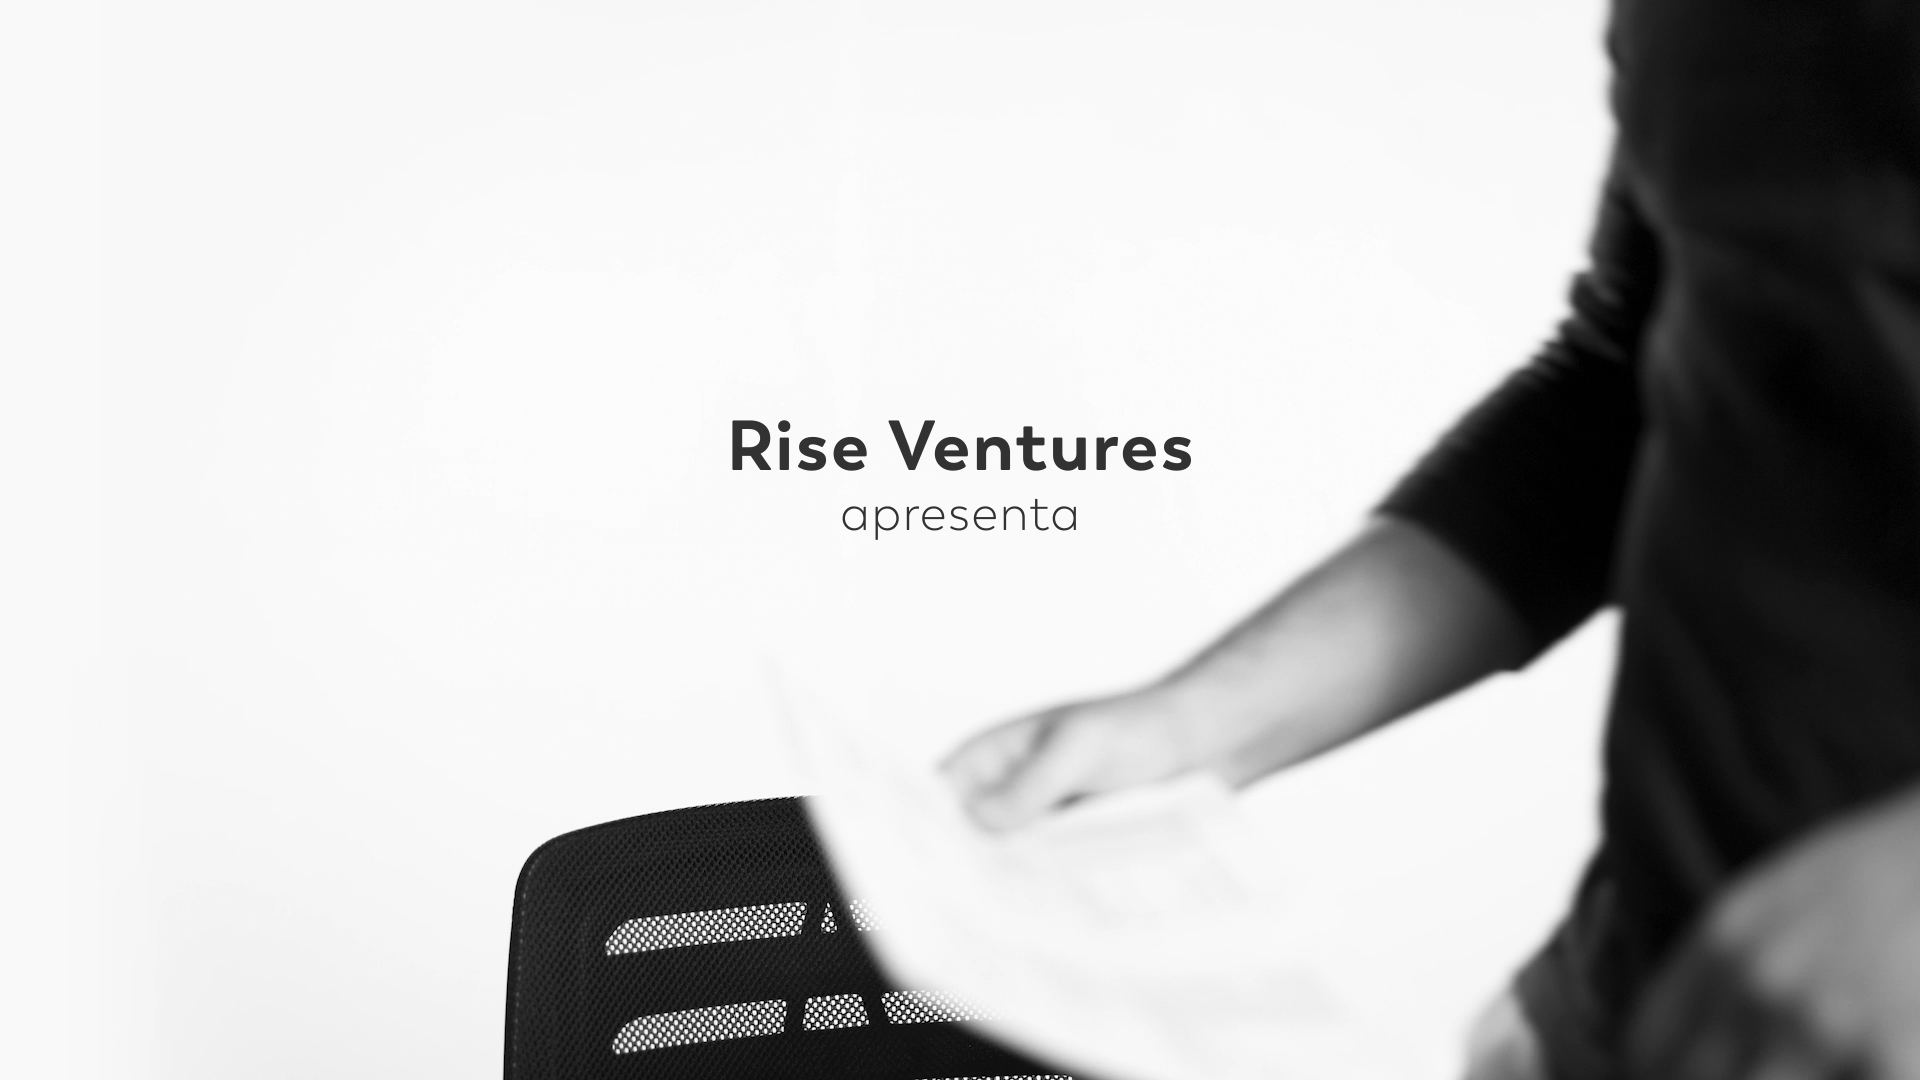 set de filmagem com fundo branco e logo do Venture Studio Rise Ventures